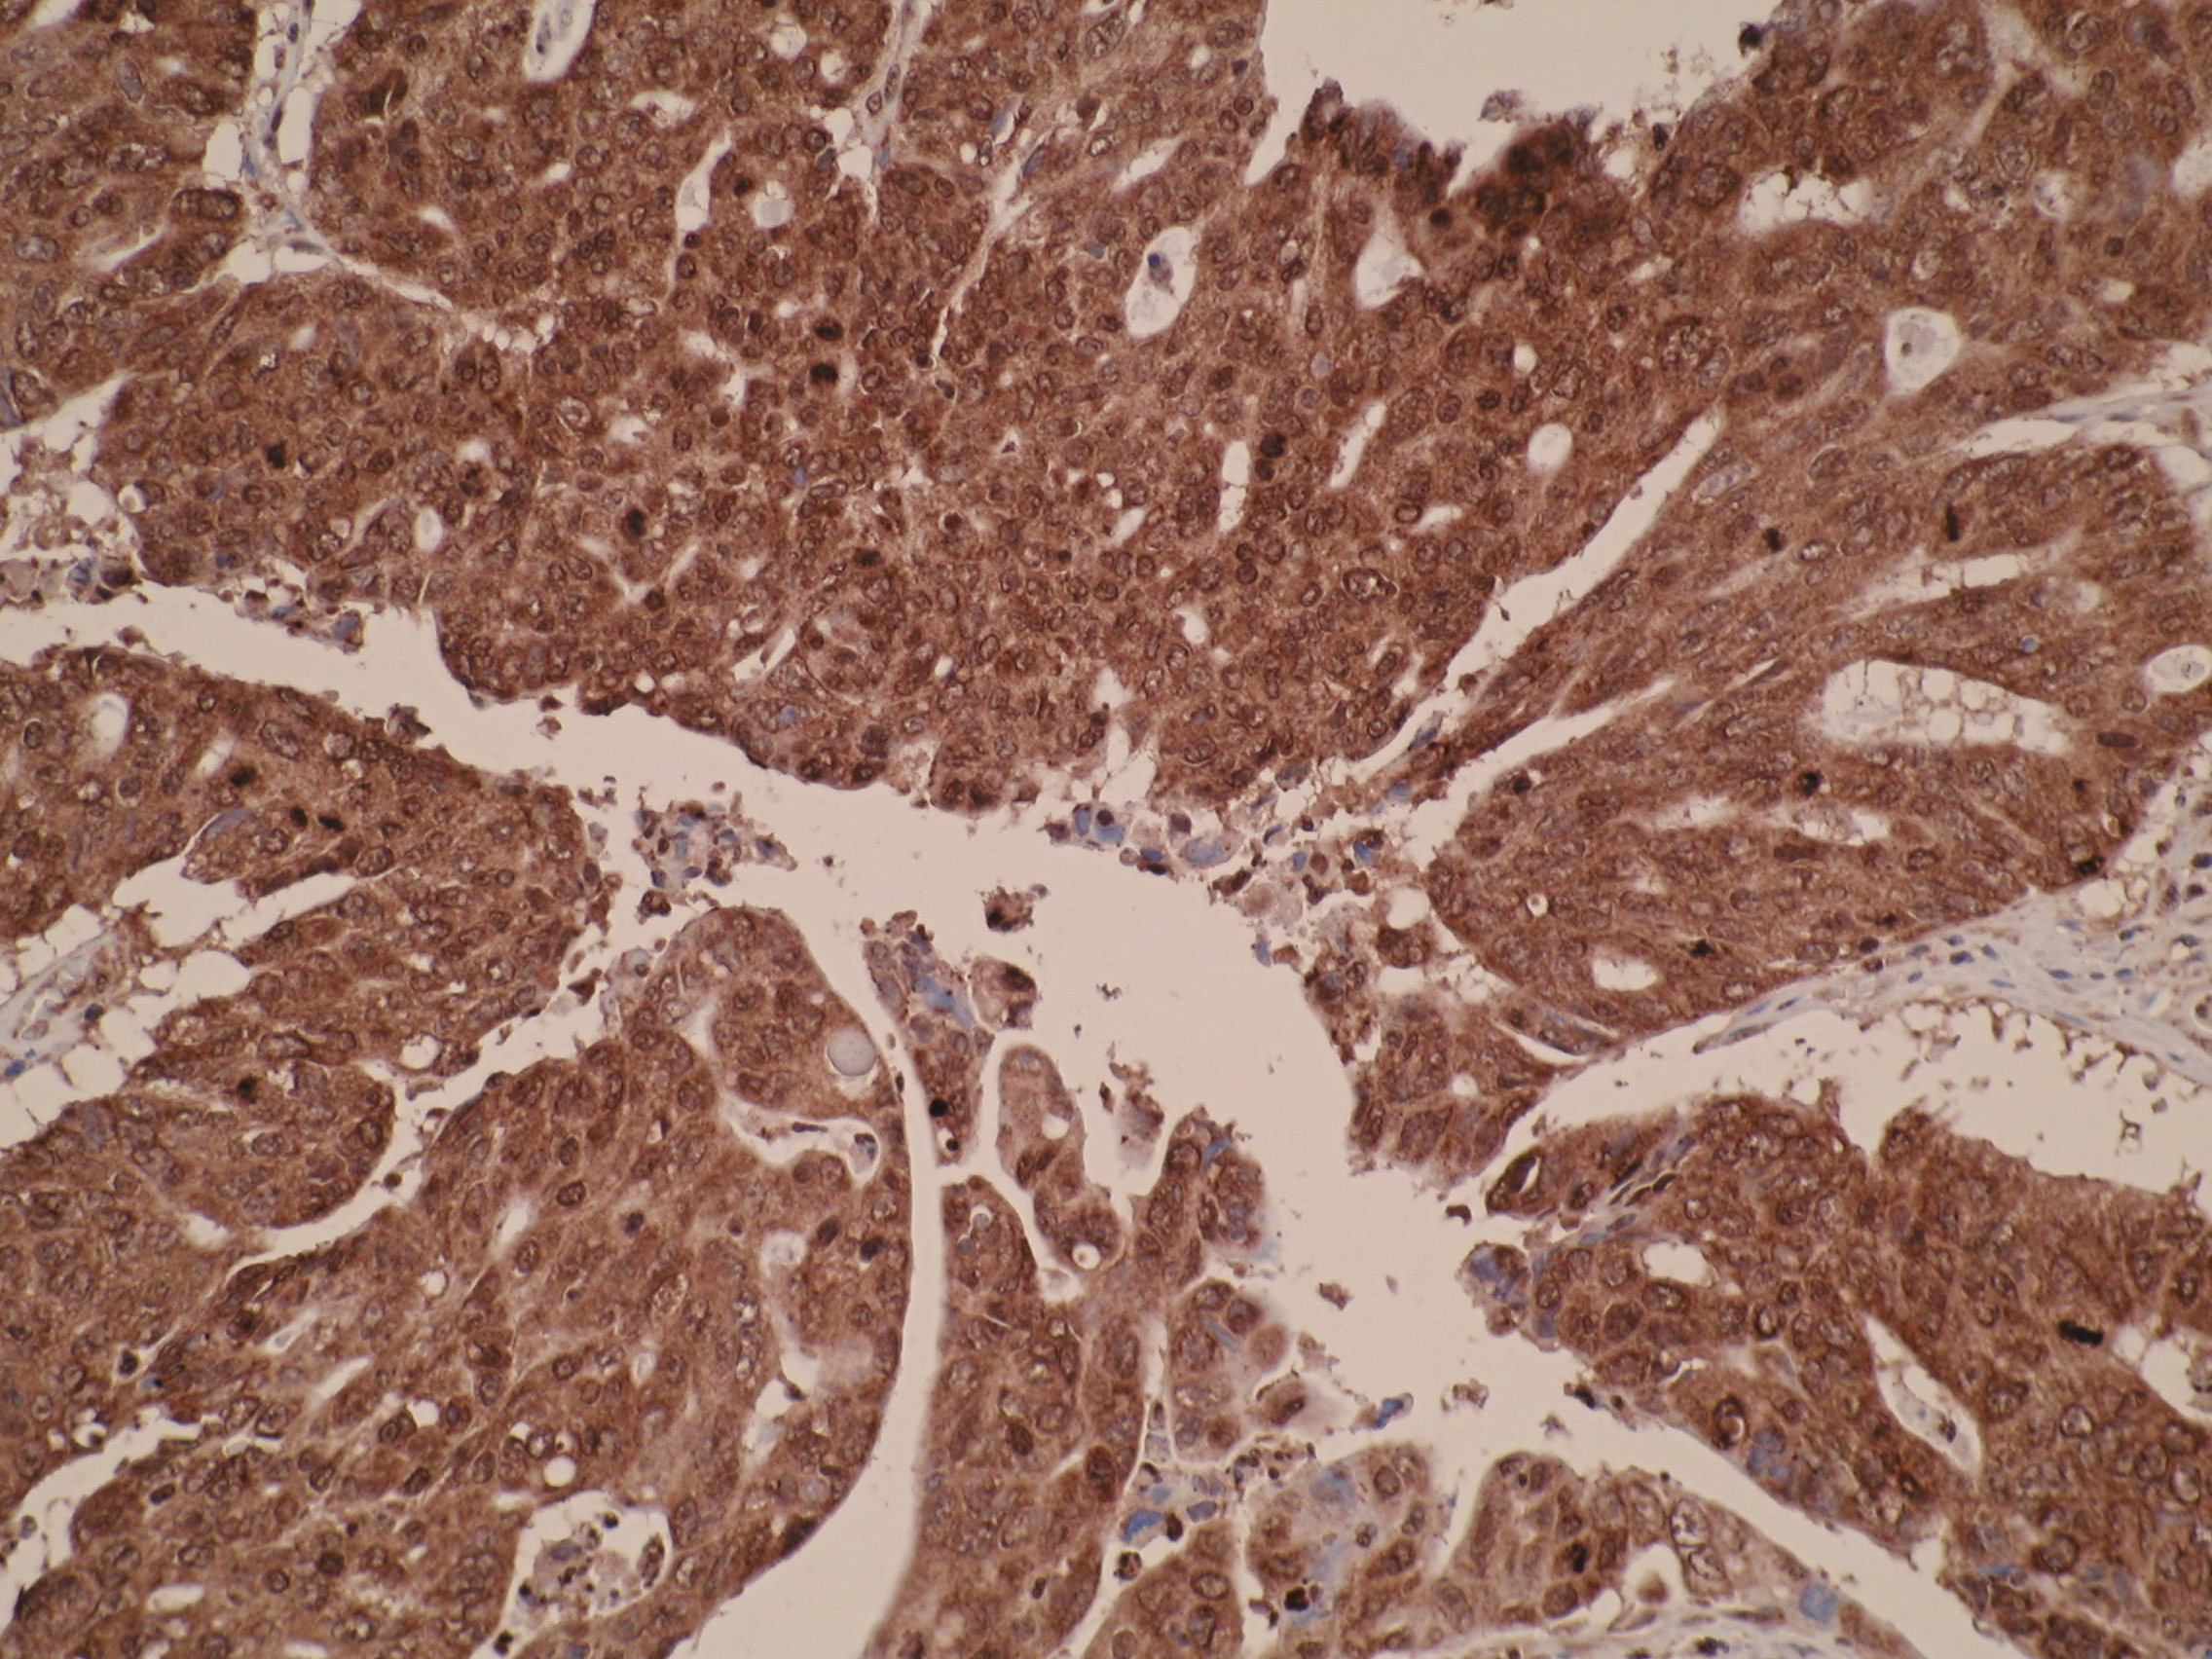 Immunohistochemistry was performed on formalin-fixed, paraffin-embedded colorectal cancer tissue sections using anti-TMEM2L [V98P4E1*B7] antibody. Strong cytoplasmic and nuclear staining were detected.